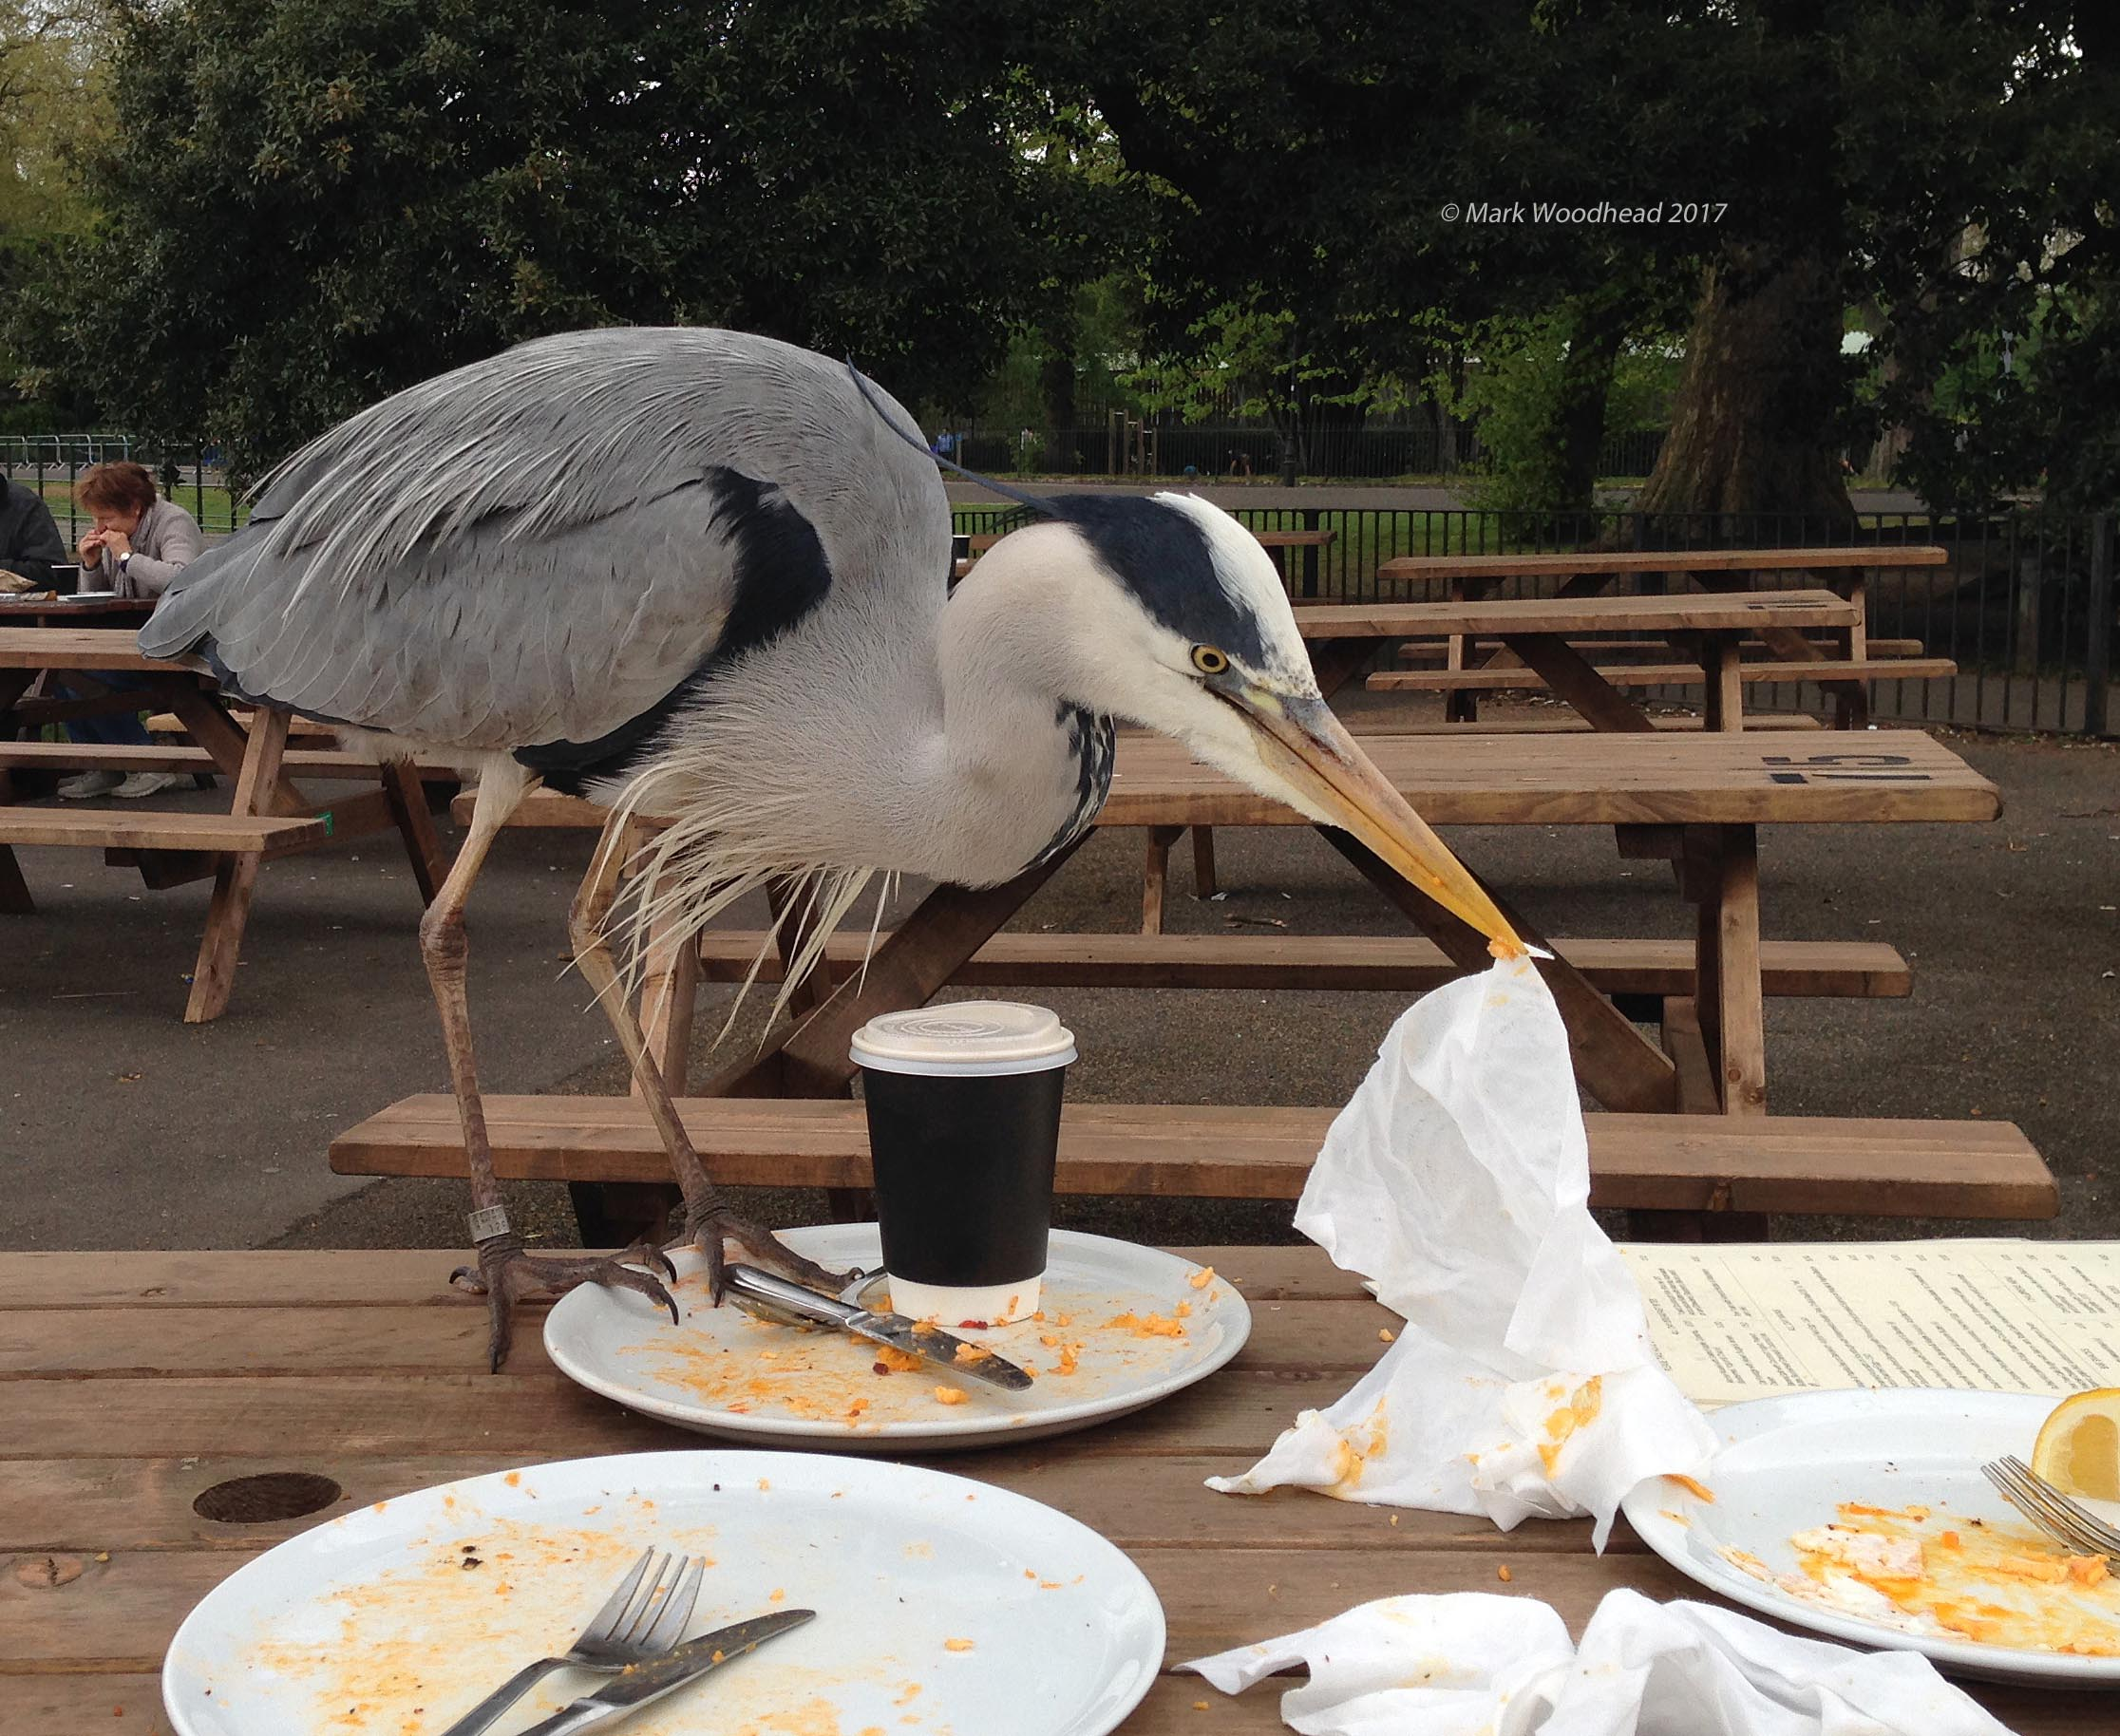 Grey Heron, Battersea, Greater London, 17 April 2017 (Photo: Mark Woodhead)